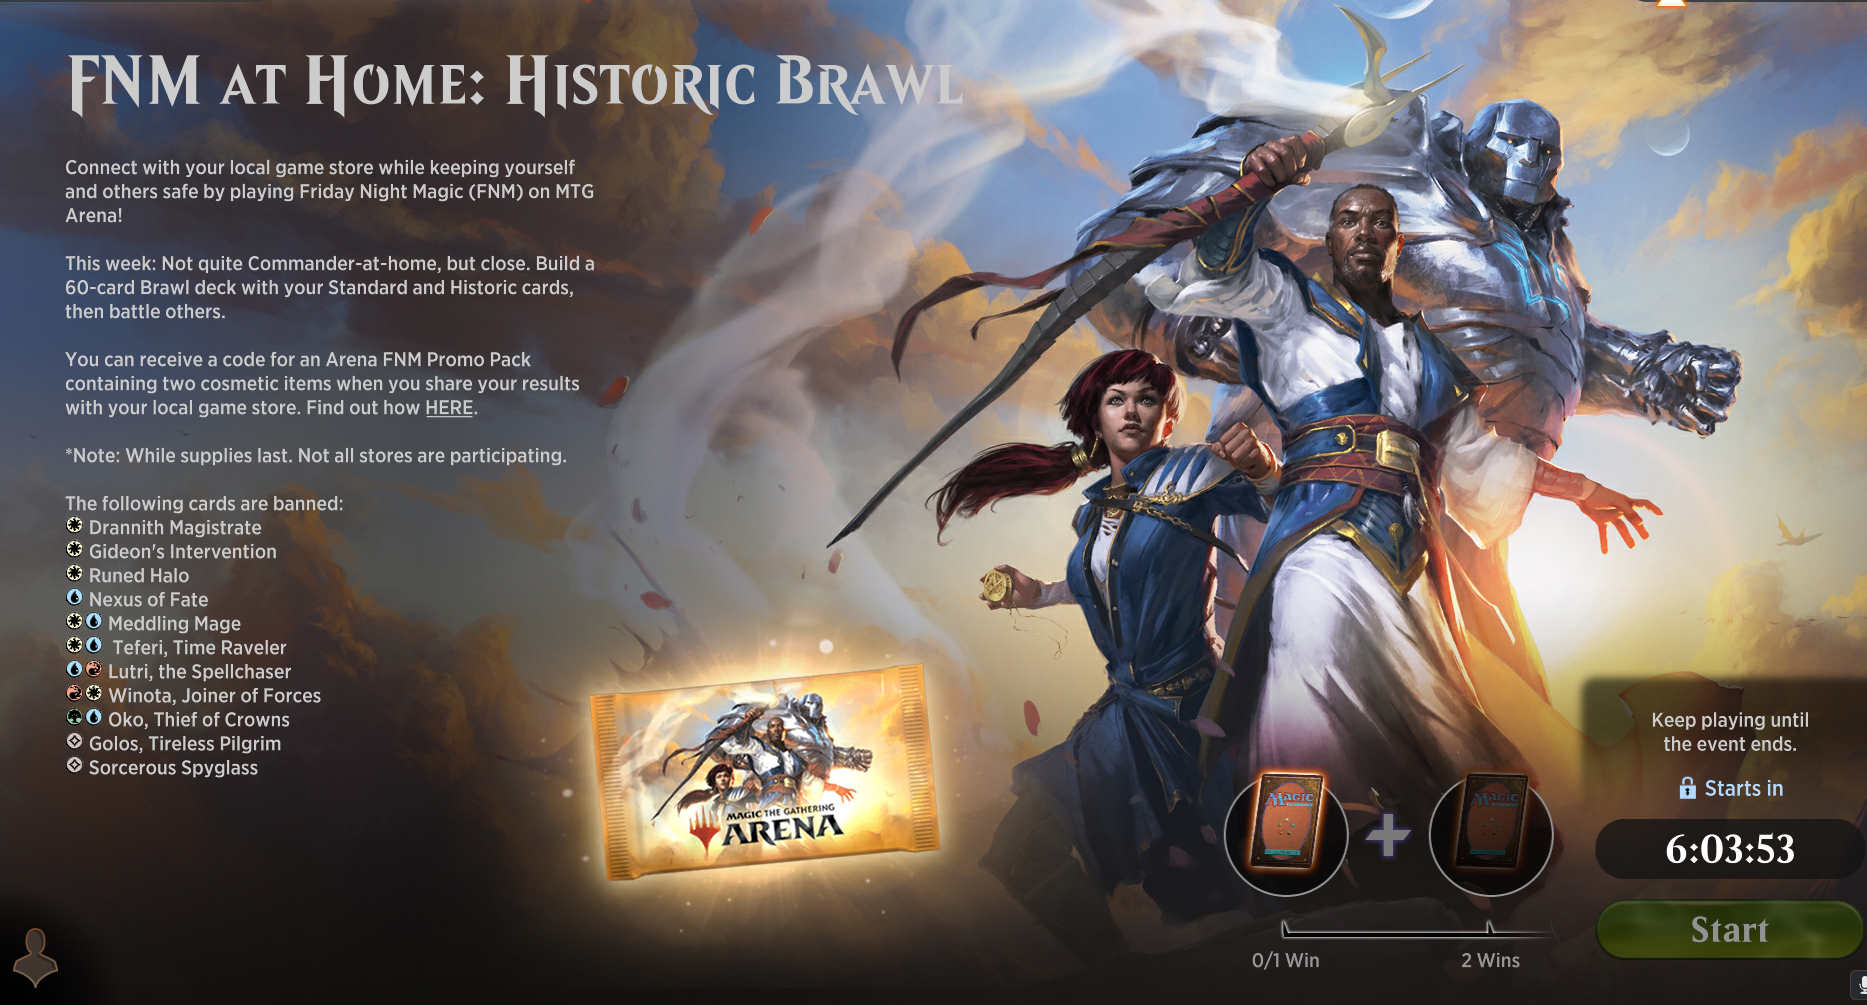 Historic Brawl - FNM at Home Event Guide and Decklists